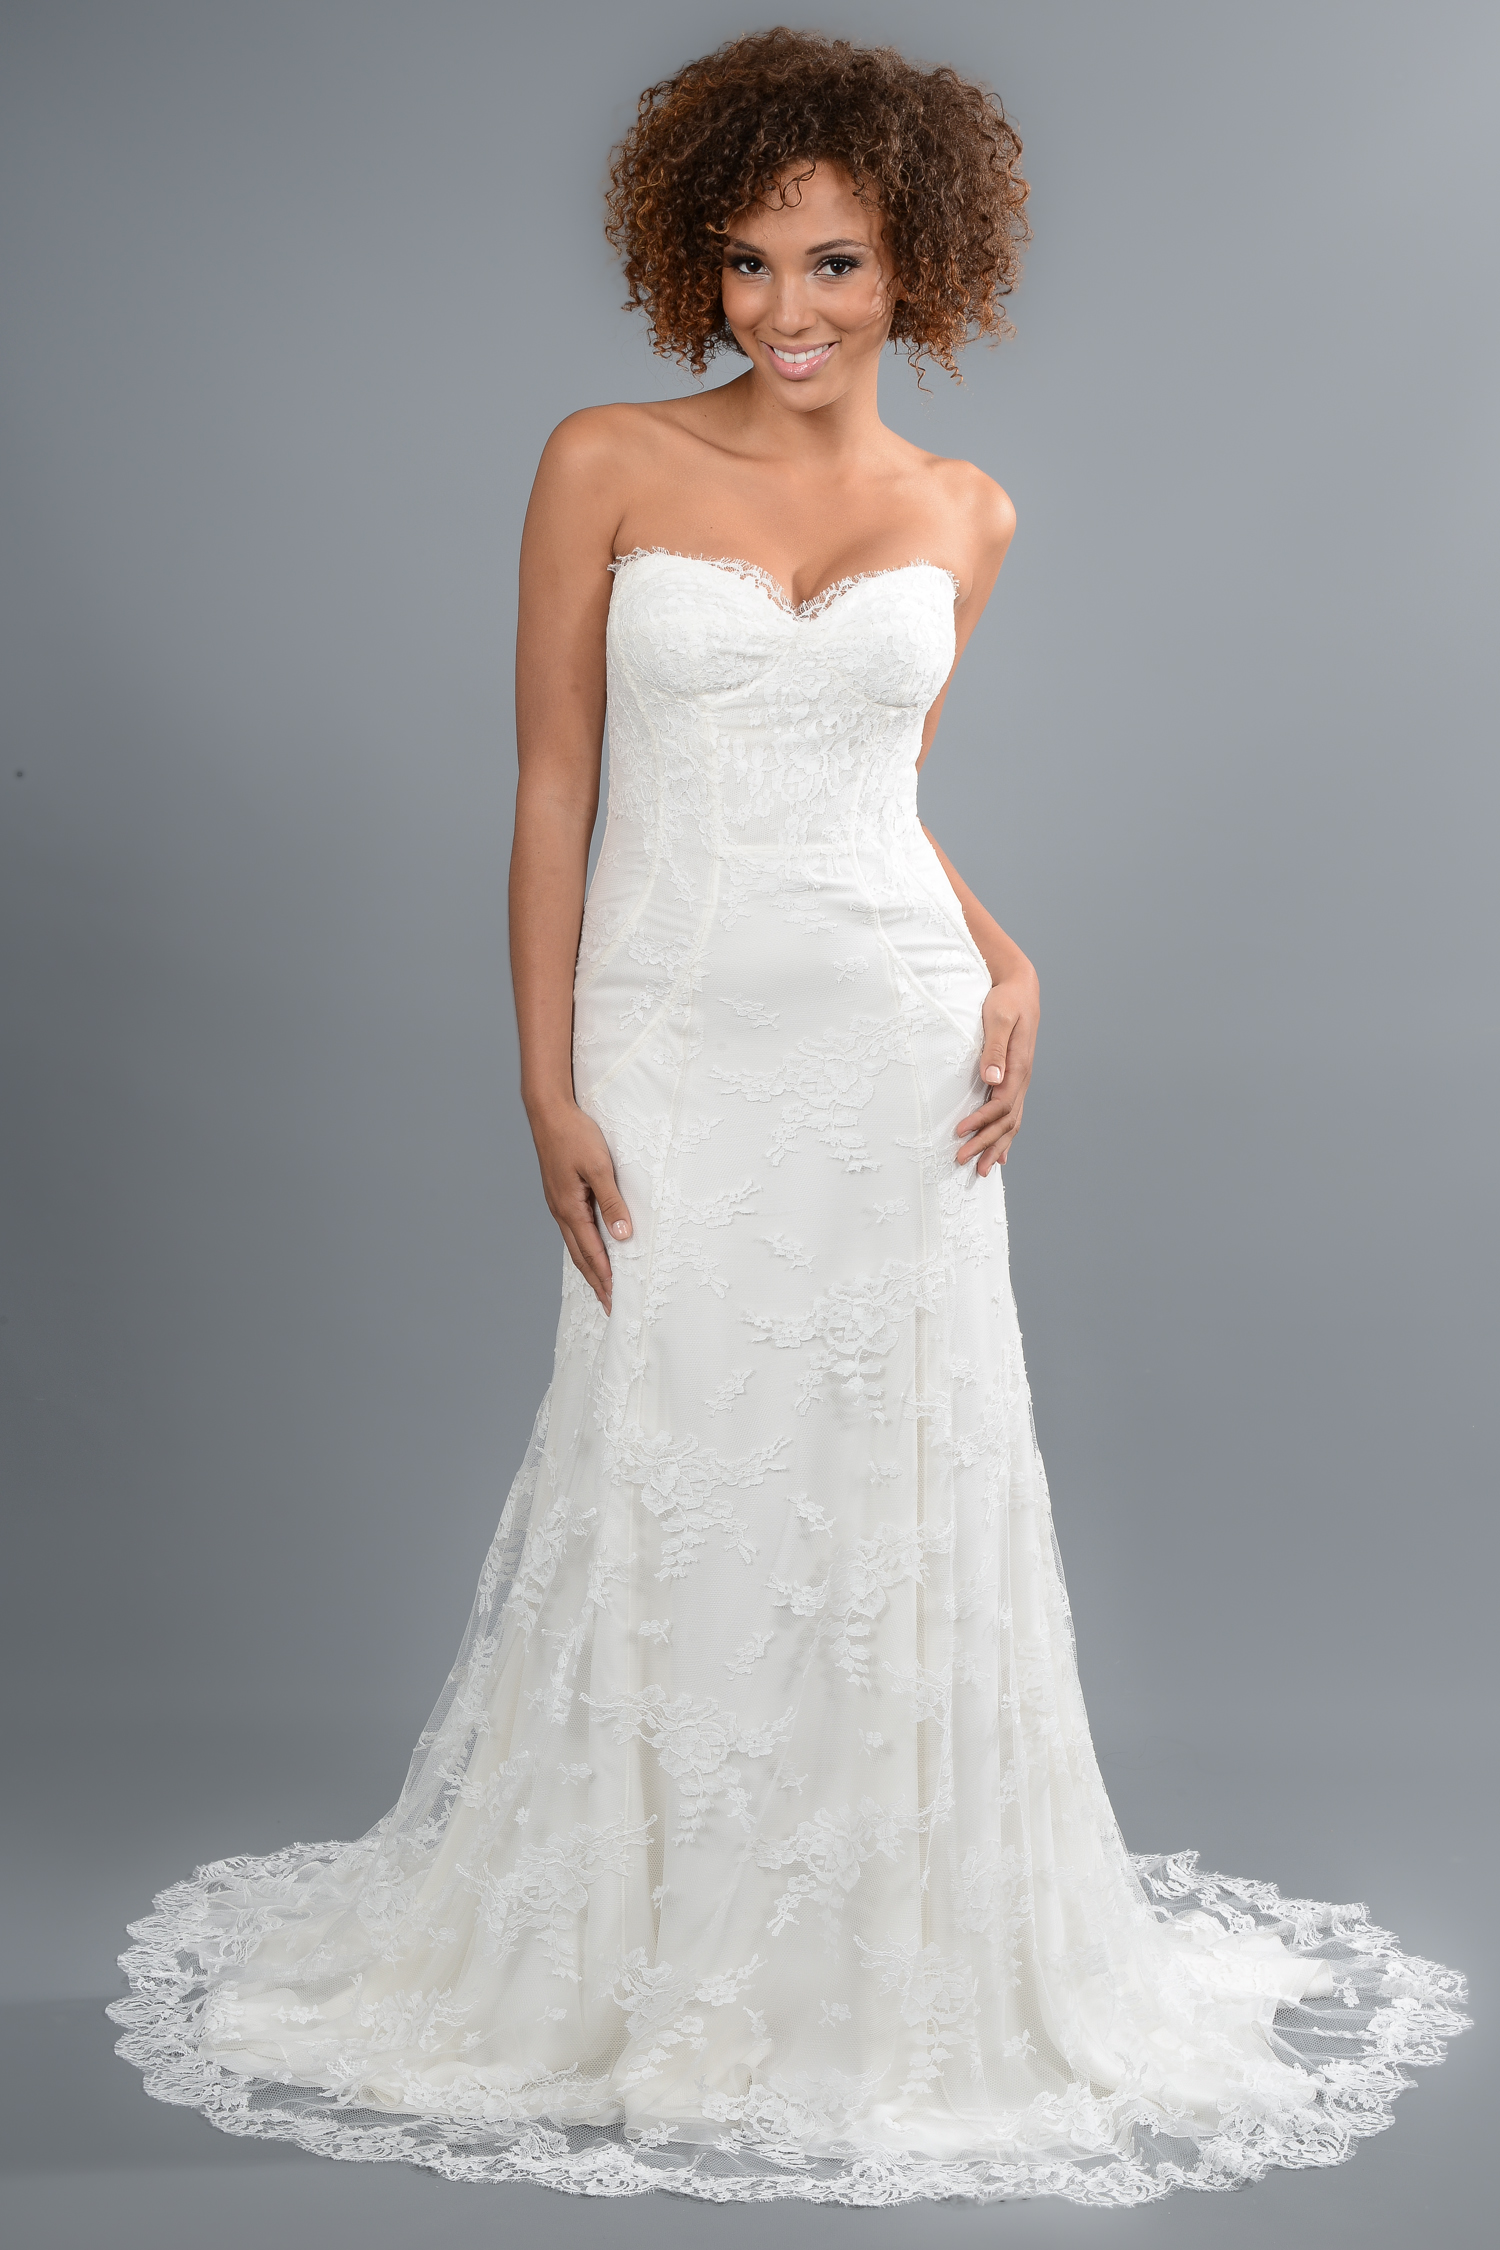 Modest Wedding Dresses Massachusetts : Wedding dresses boston area cool bravofile